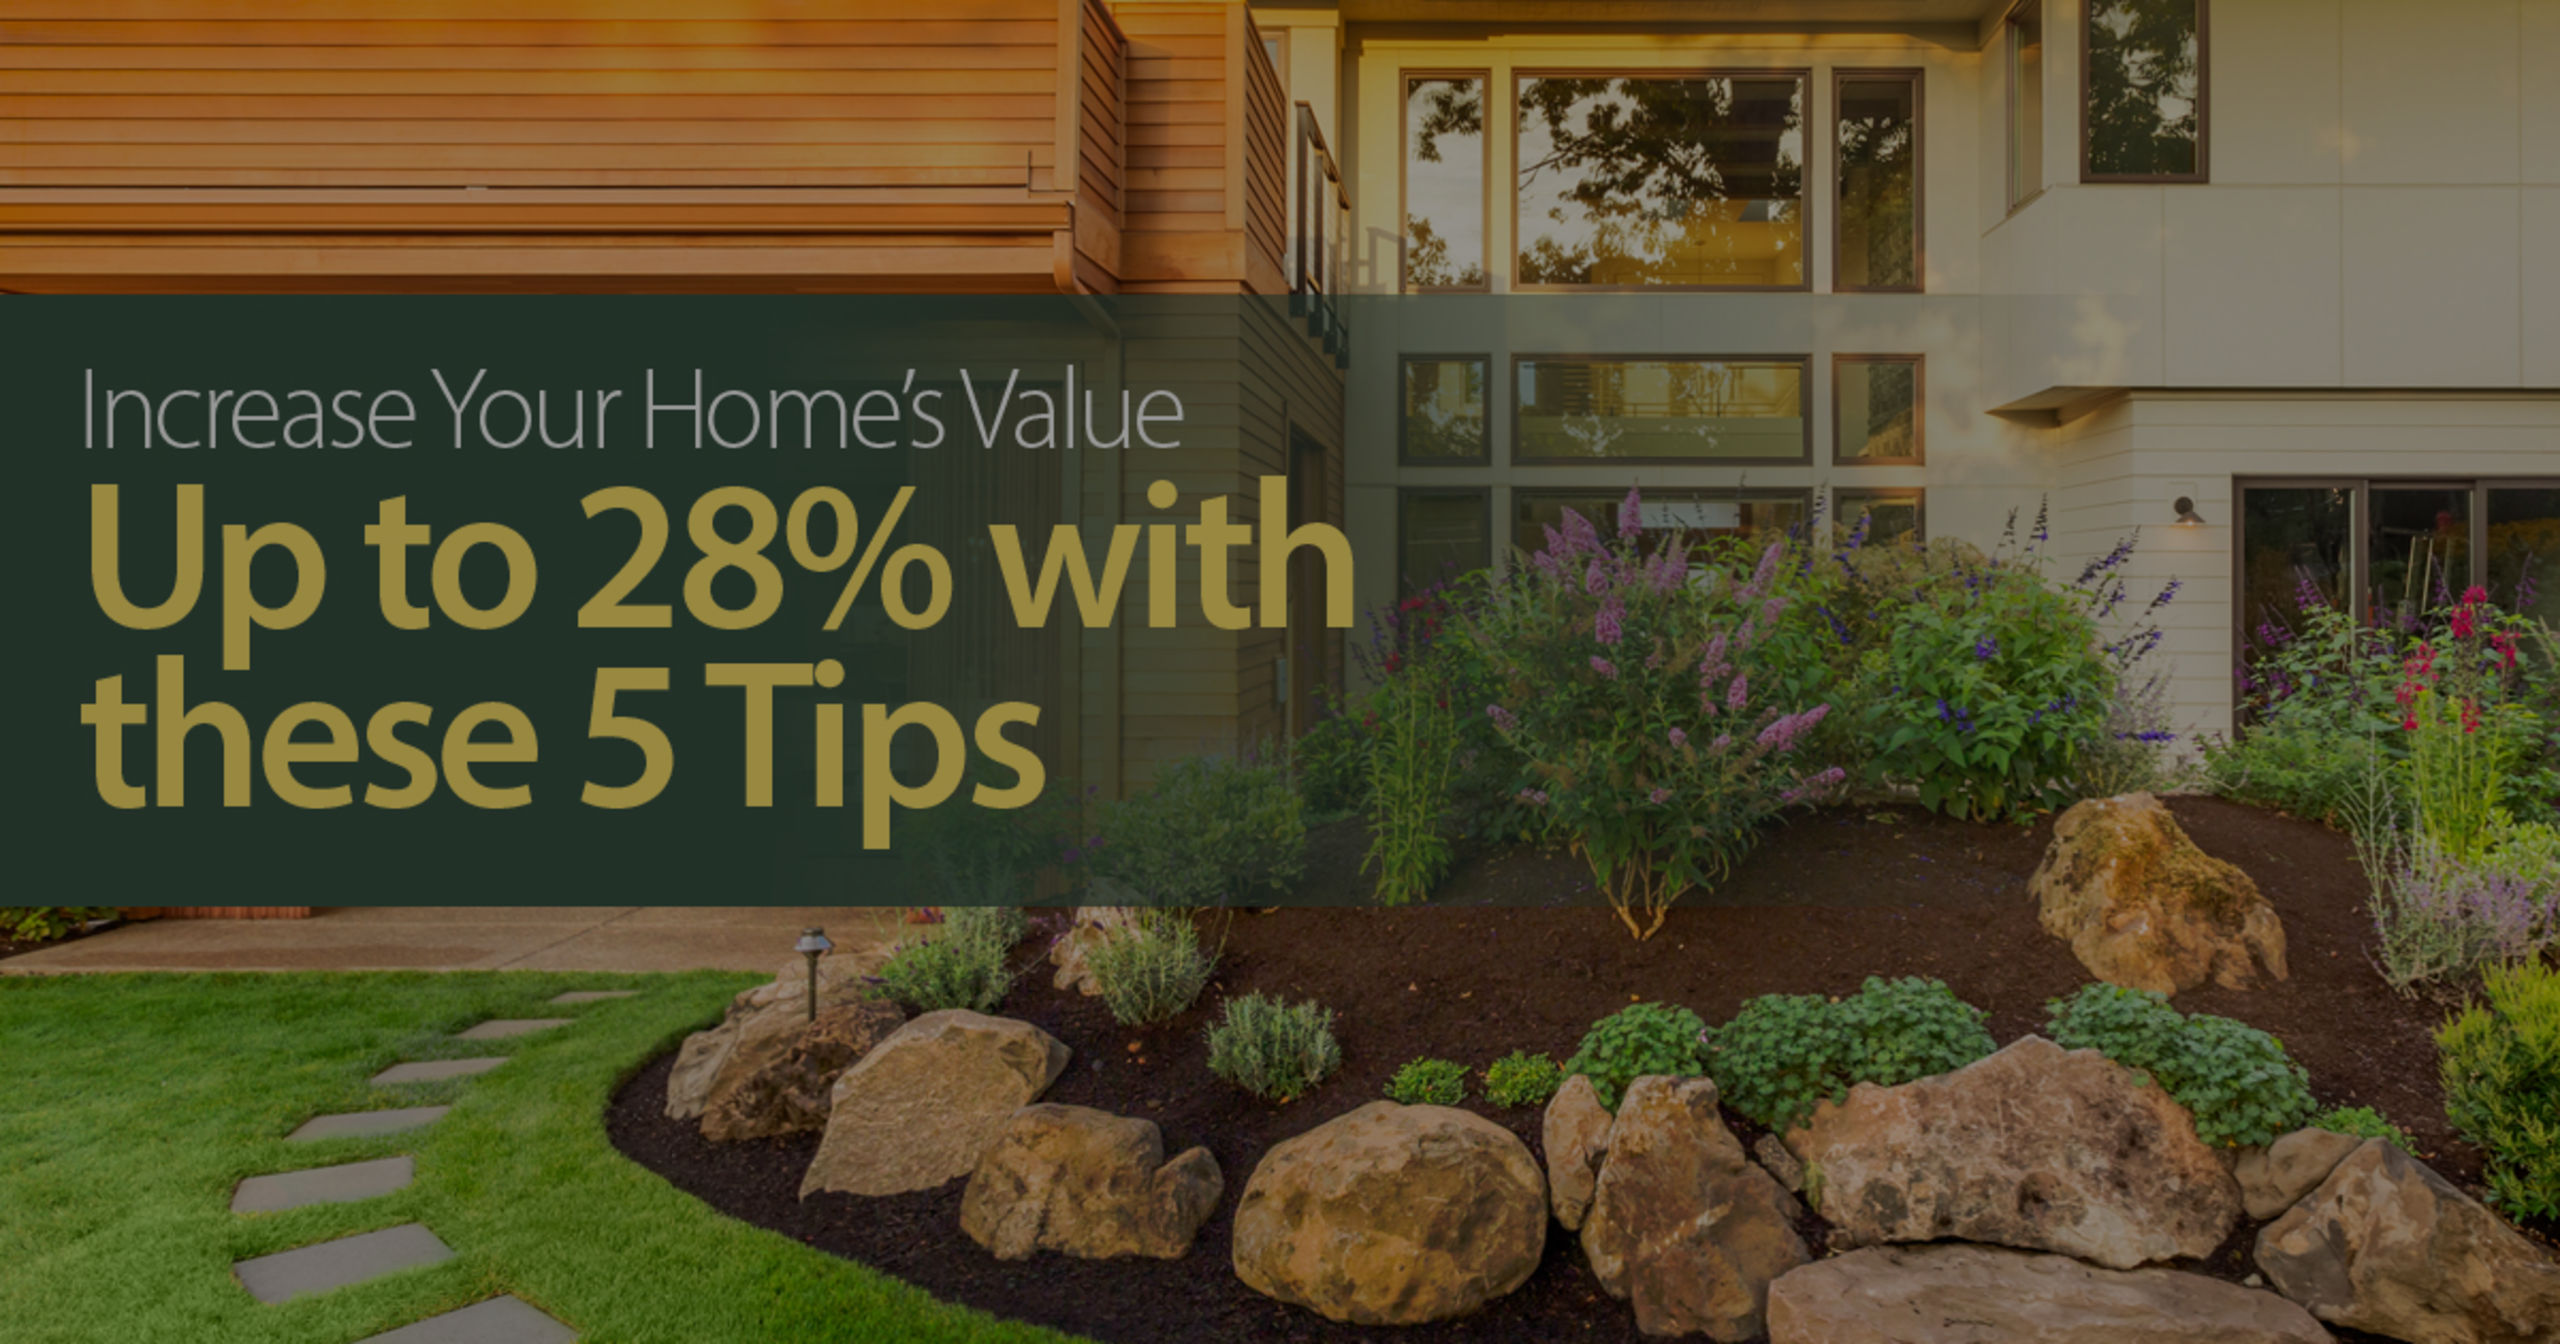 5 Tips To Increase Your Home's Value